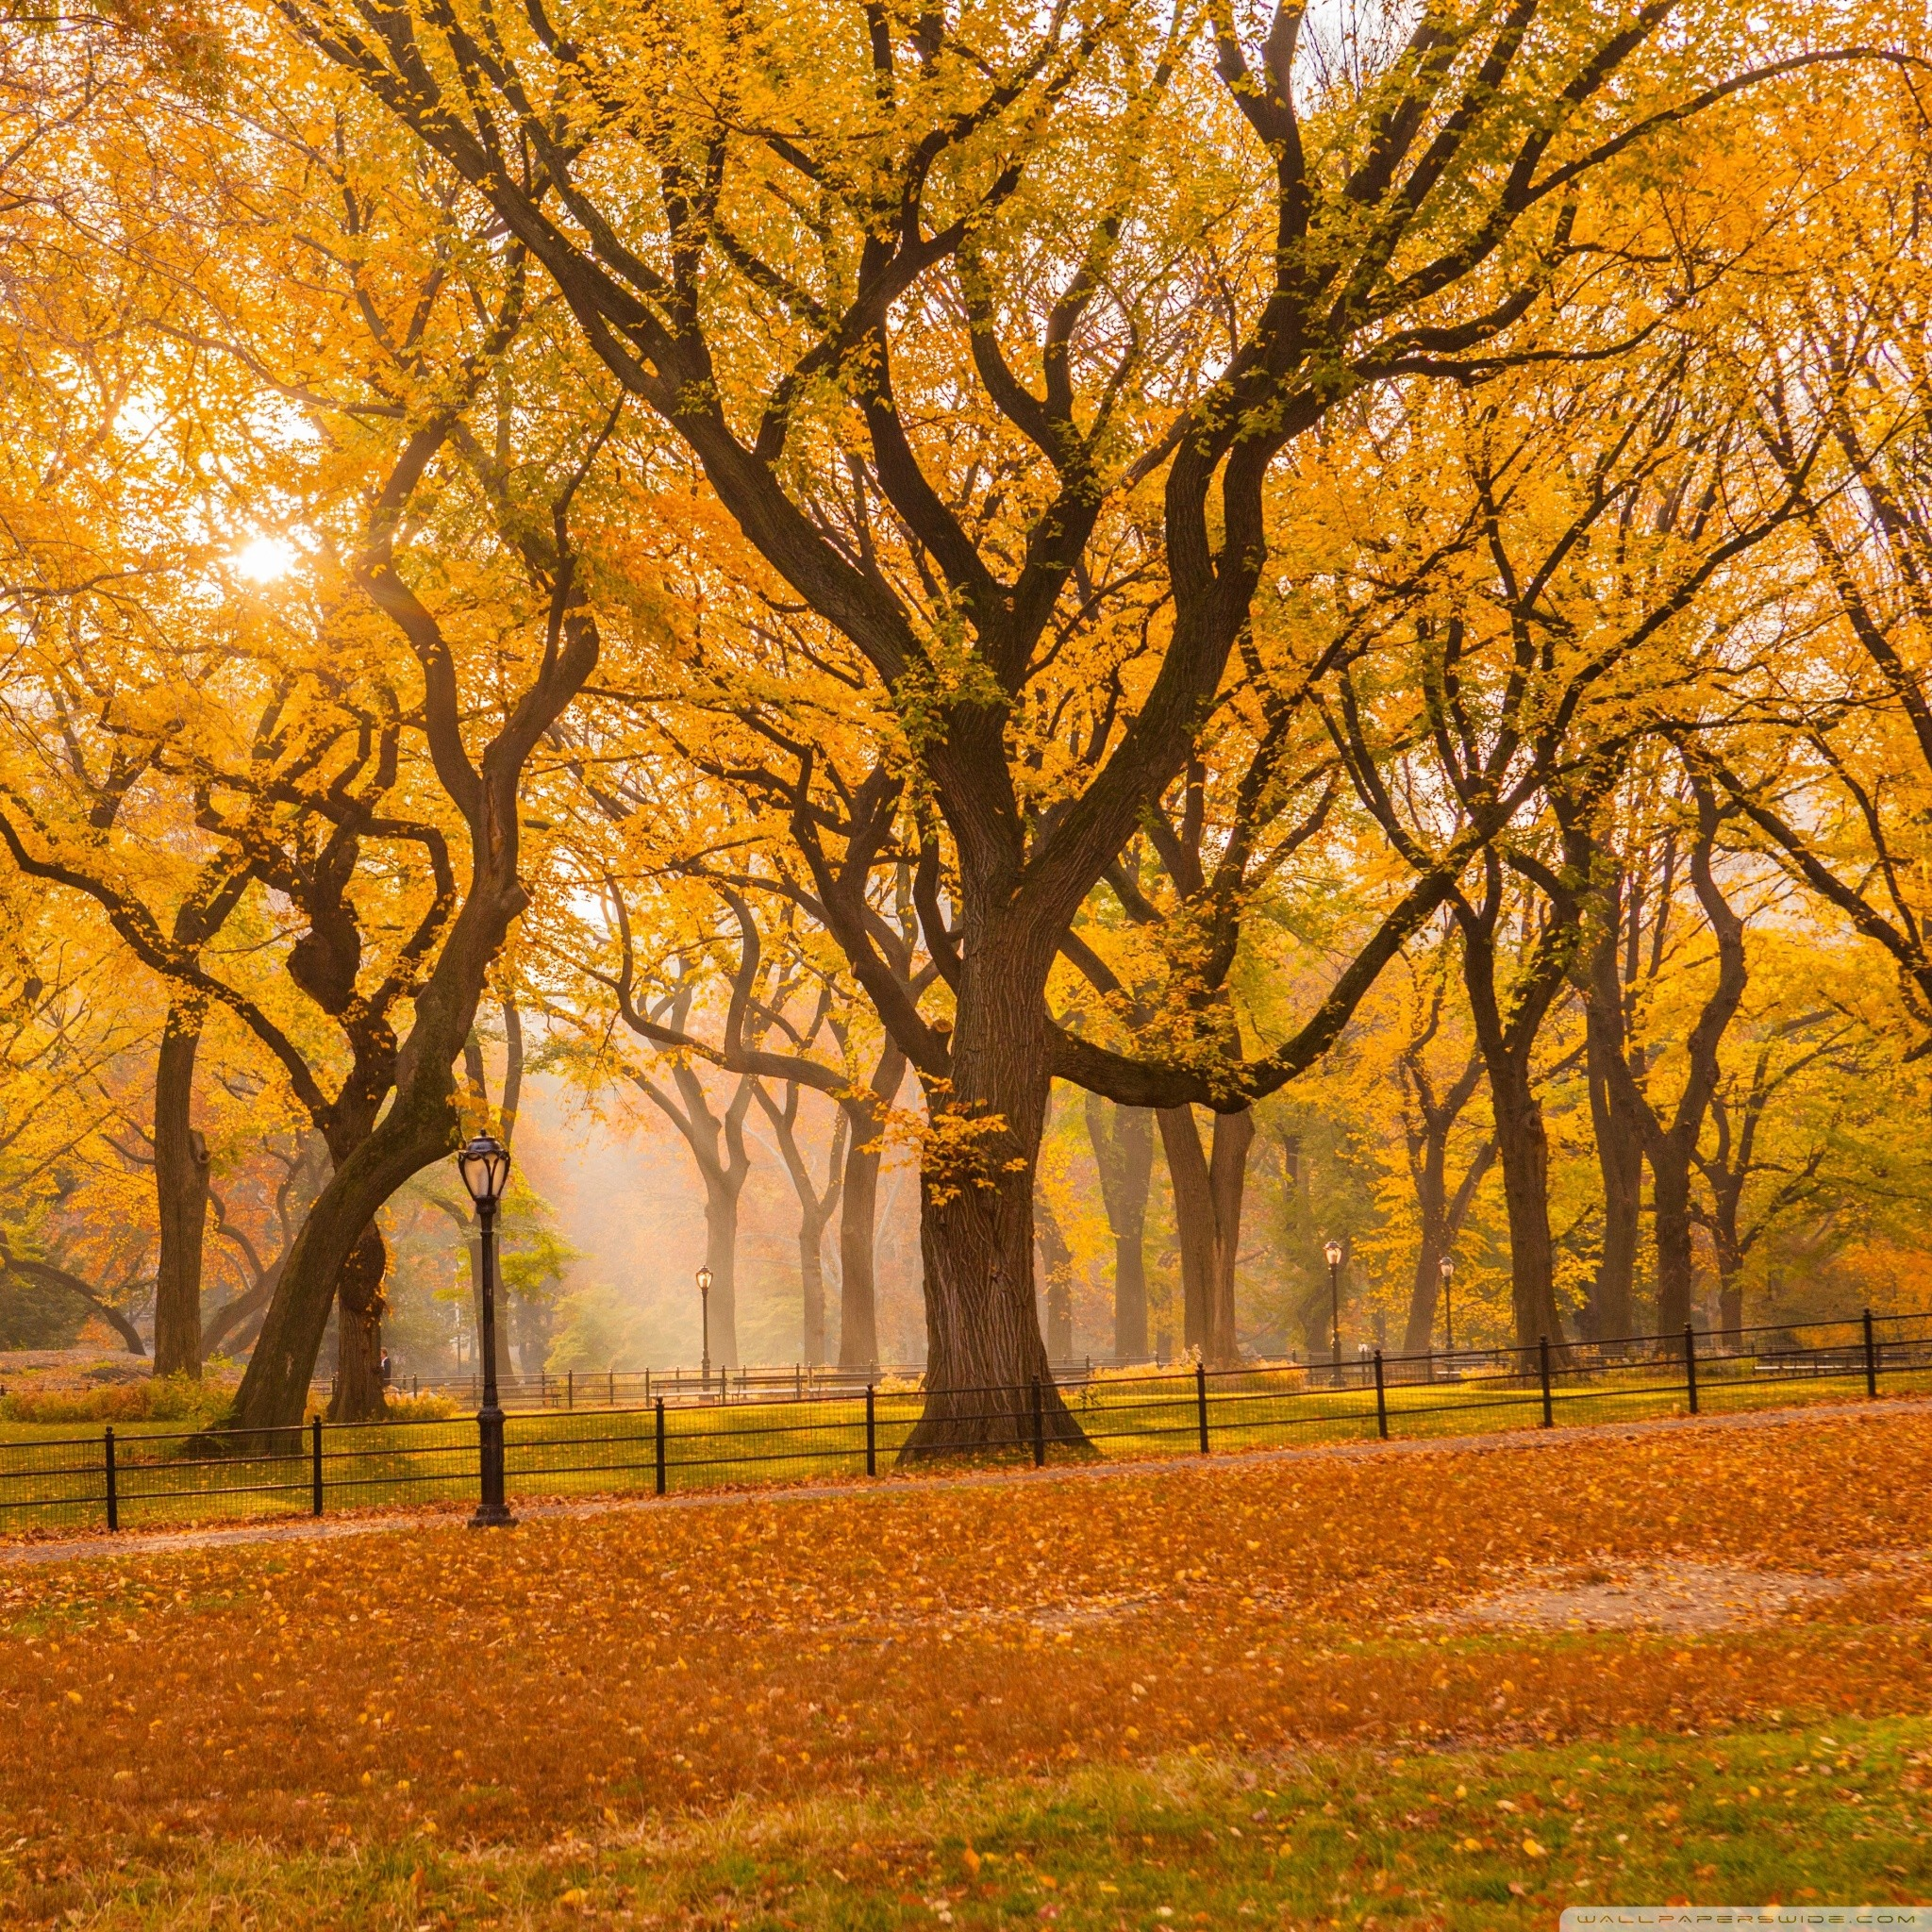 Fall Wallpaper For Desktop 1920x1080 Fall Foliage Wallpaper 183 ①